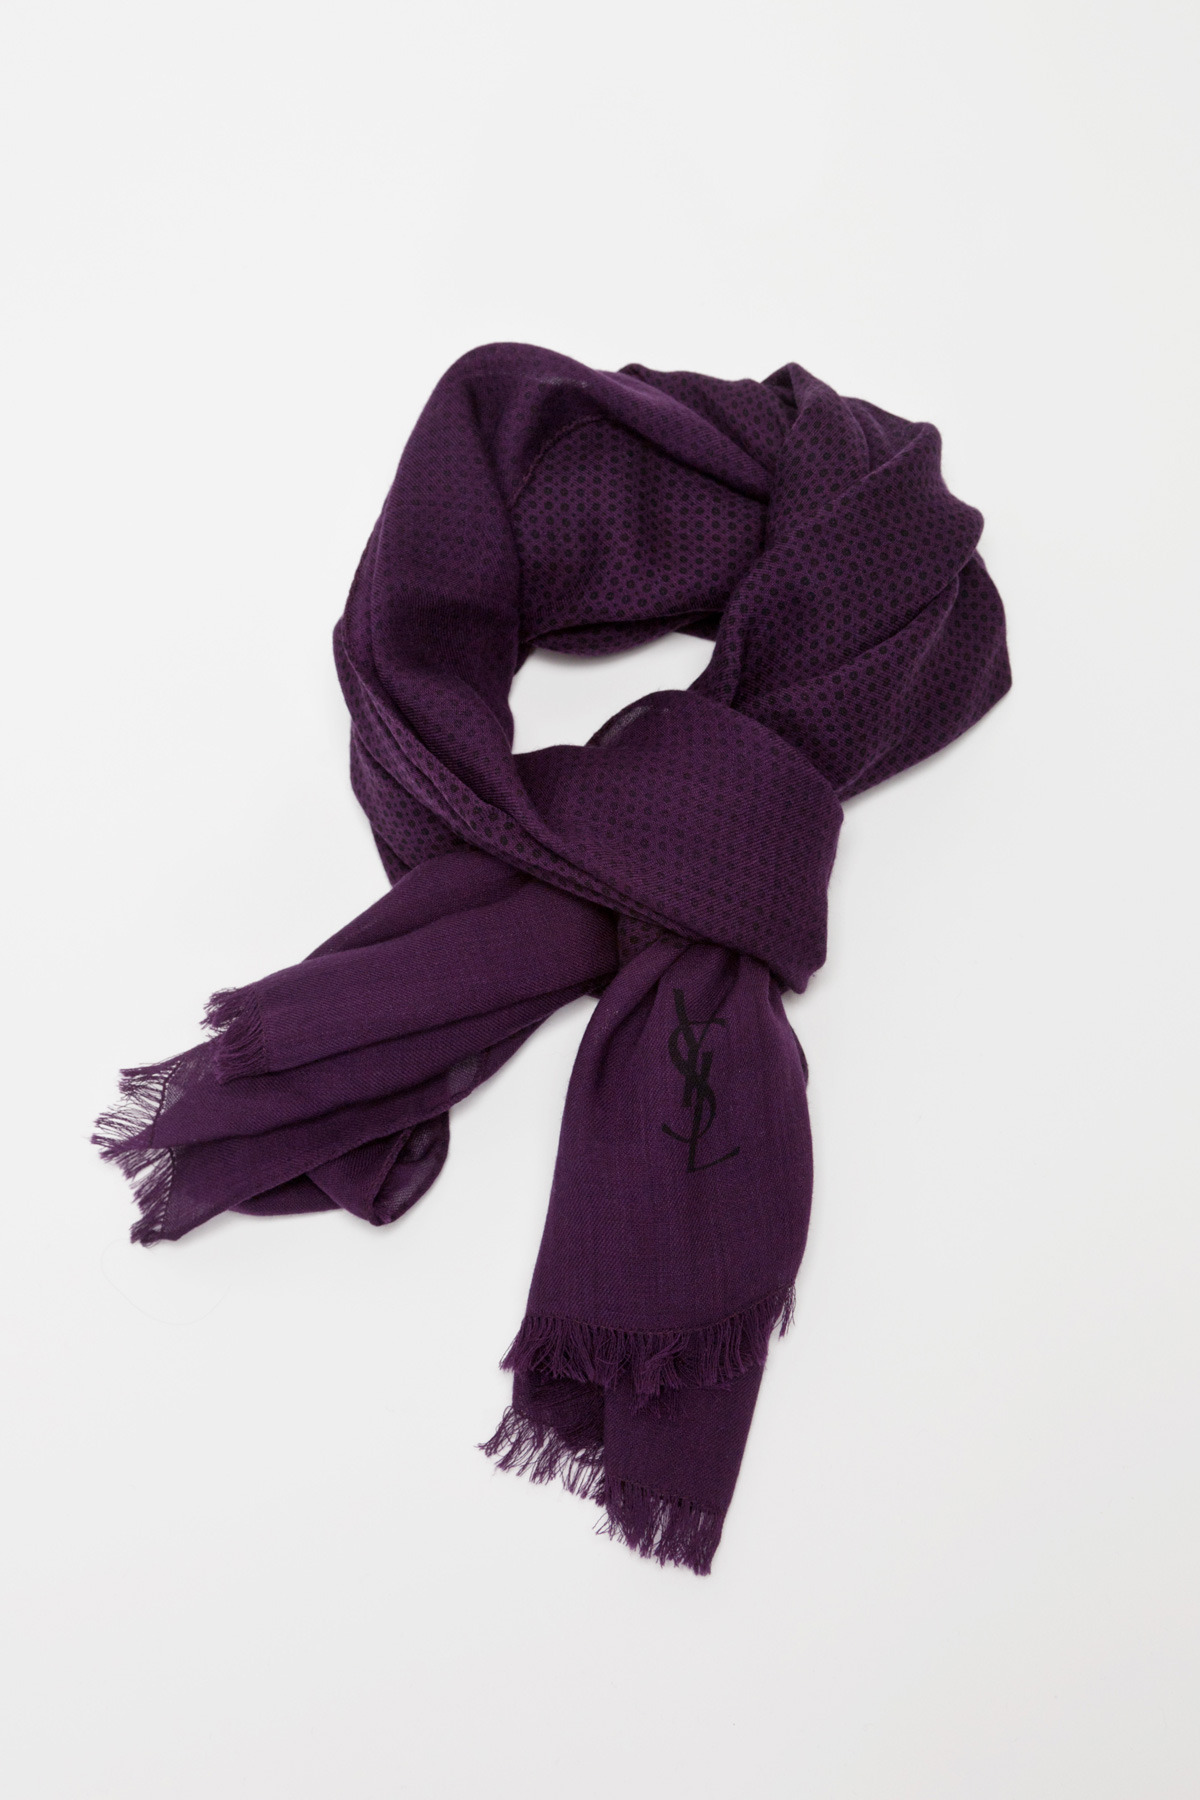 Yves Saint Laurent Purple Dots Scarf